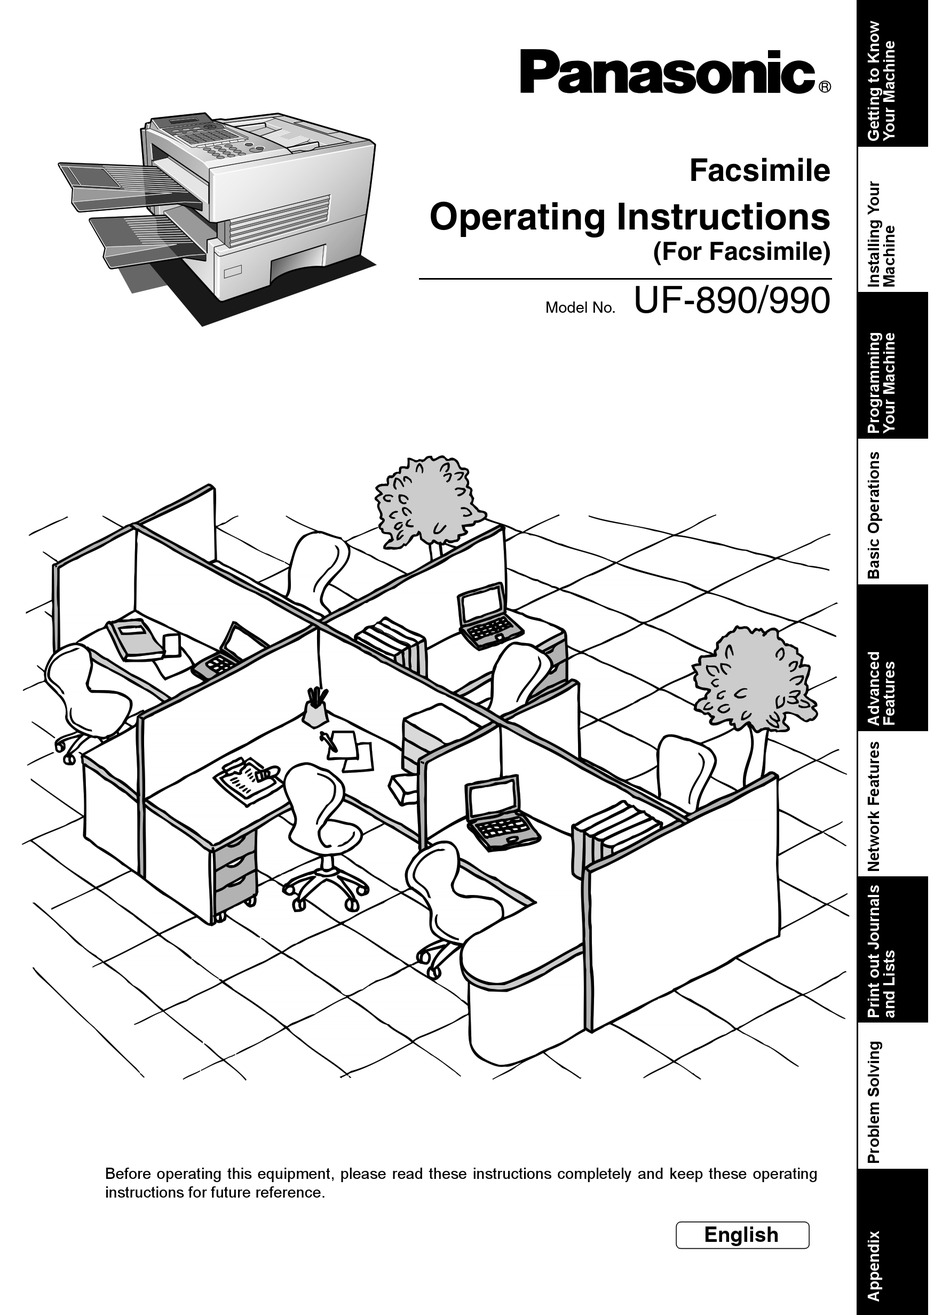 PANASONIC UF-890/990 OPERATING INSTRUCTIONS MANUAL Pdf